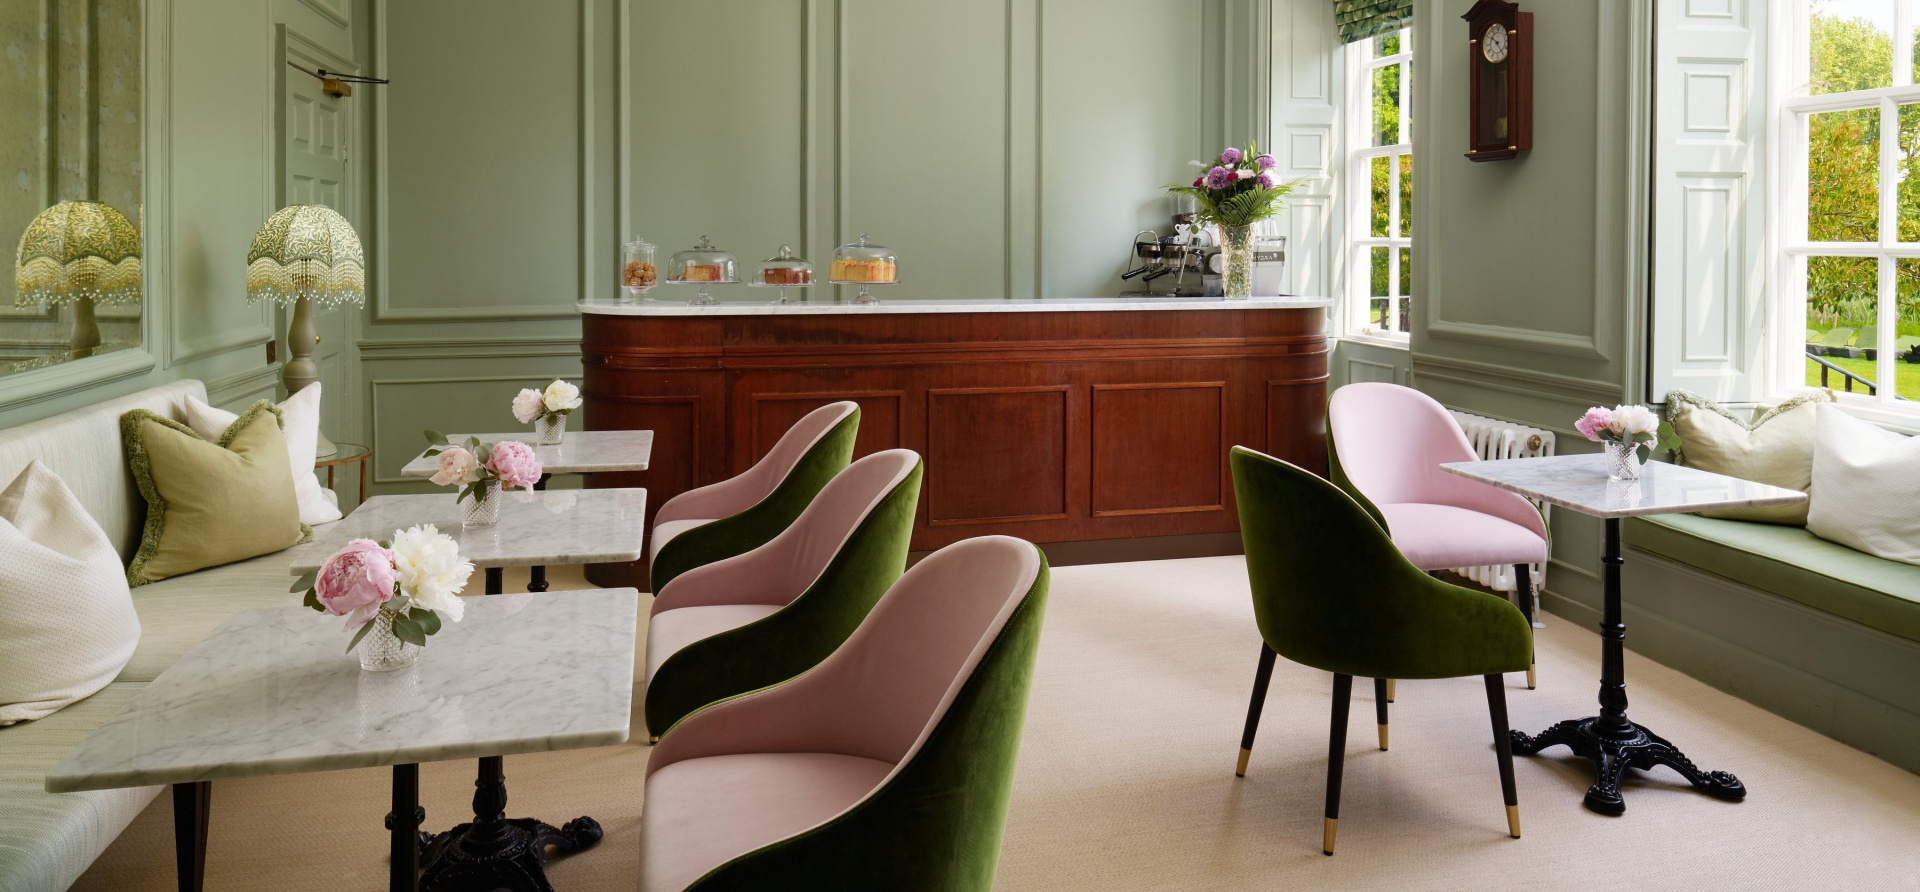 Evening Spa & Dinner at Champneys Henlow-6